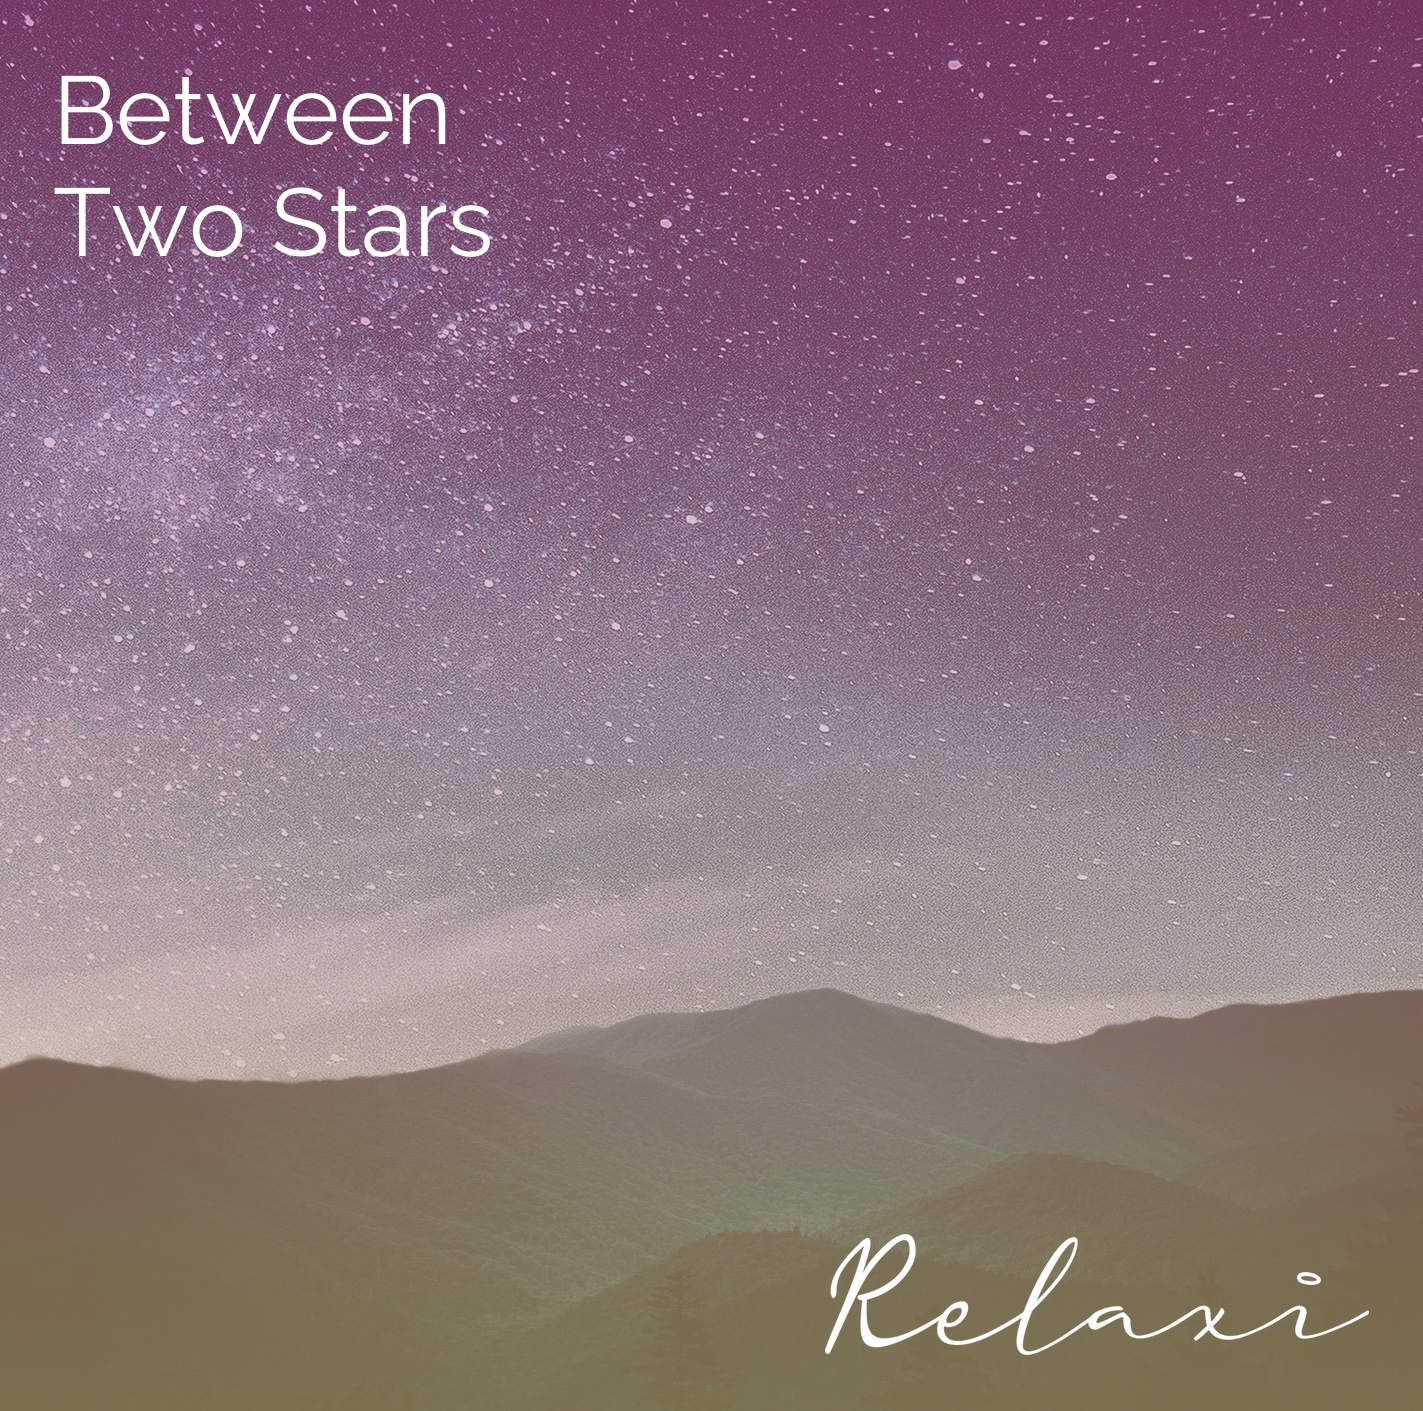 between-two-stars-3861952